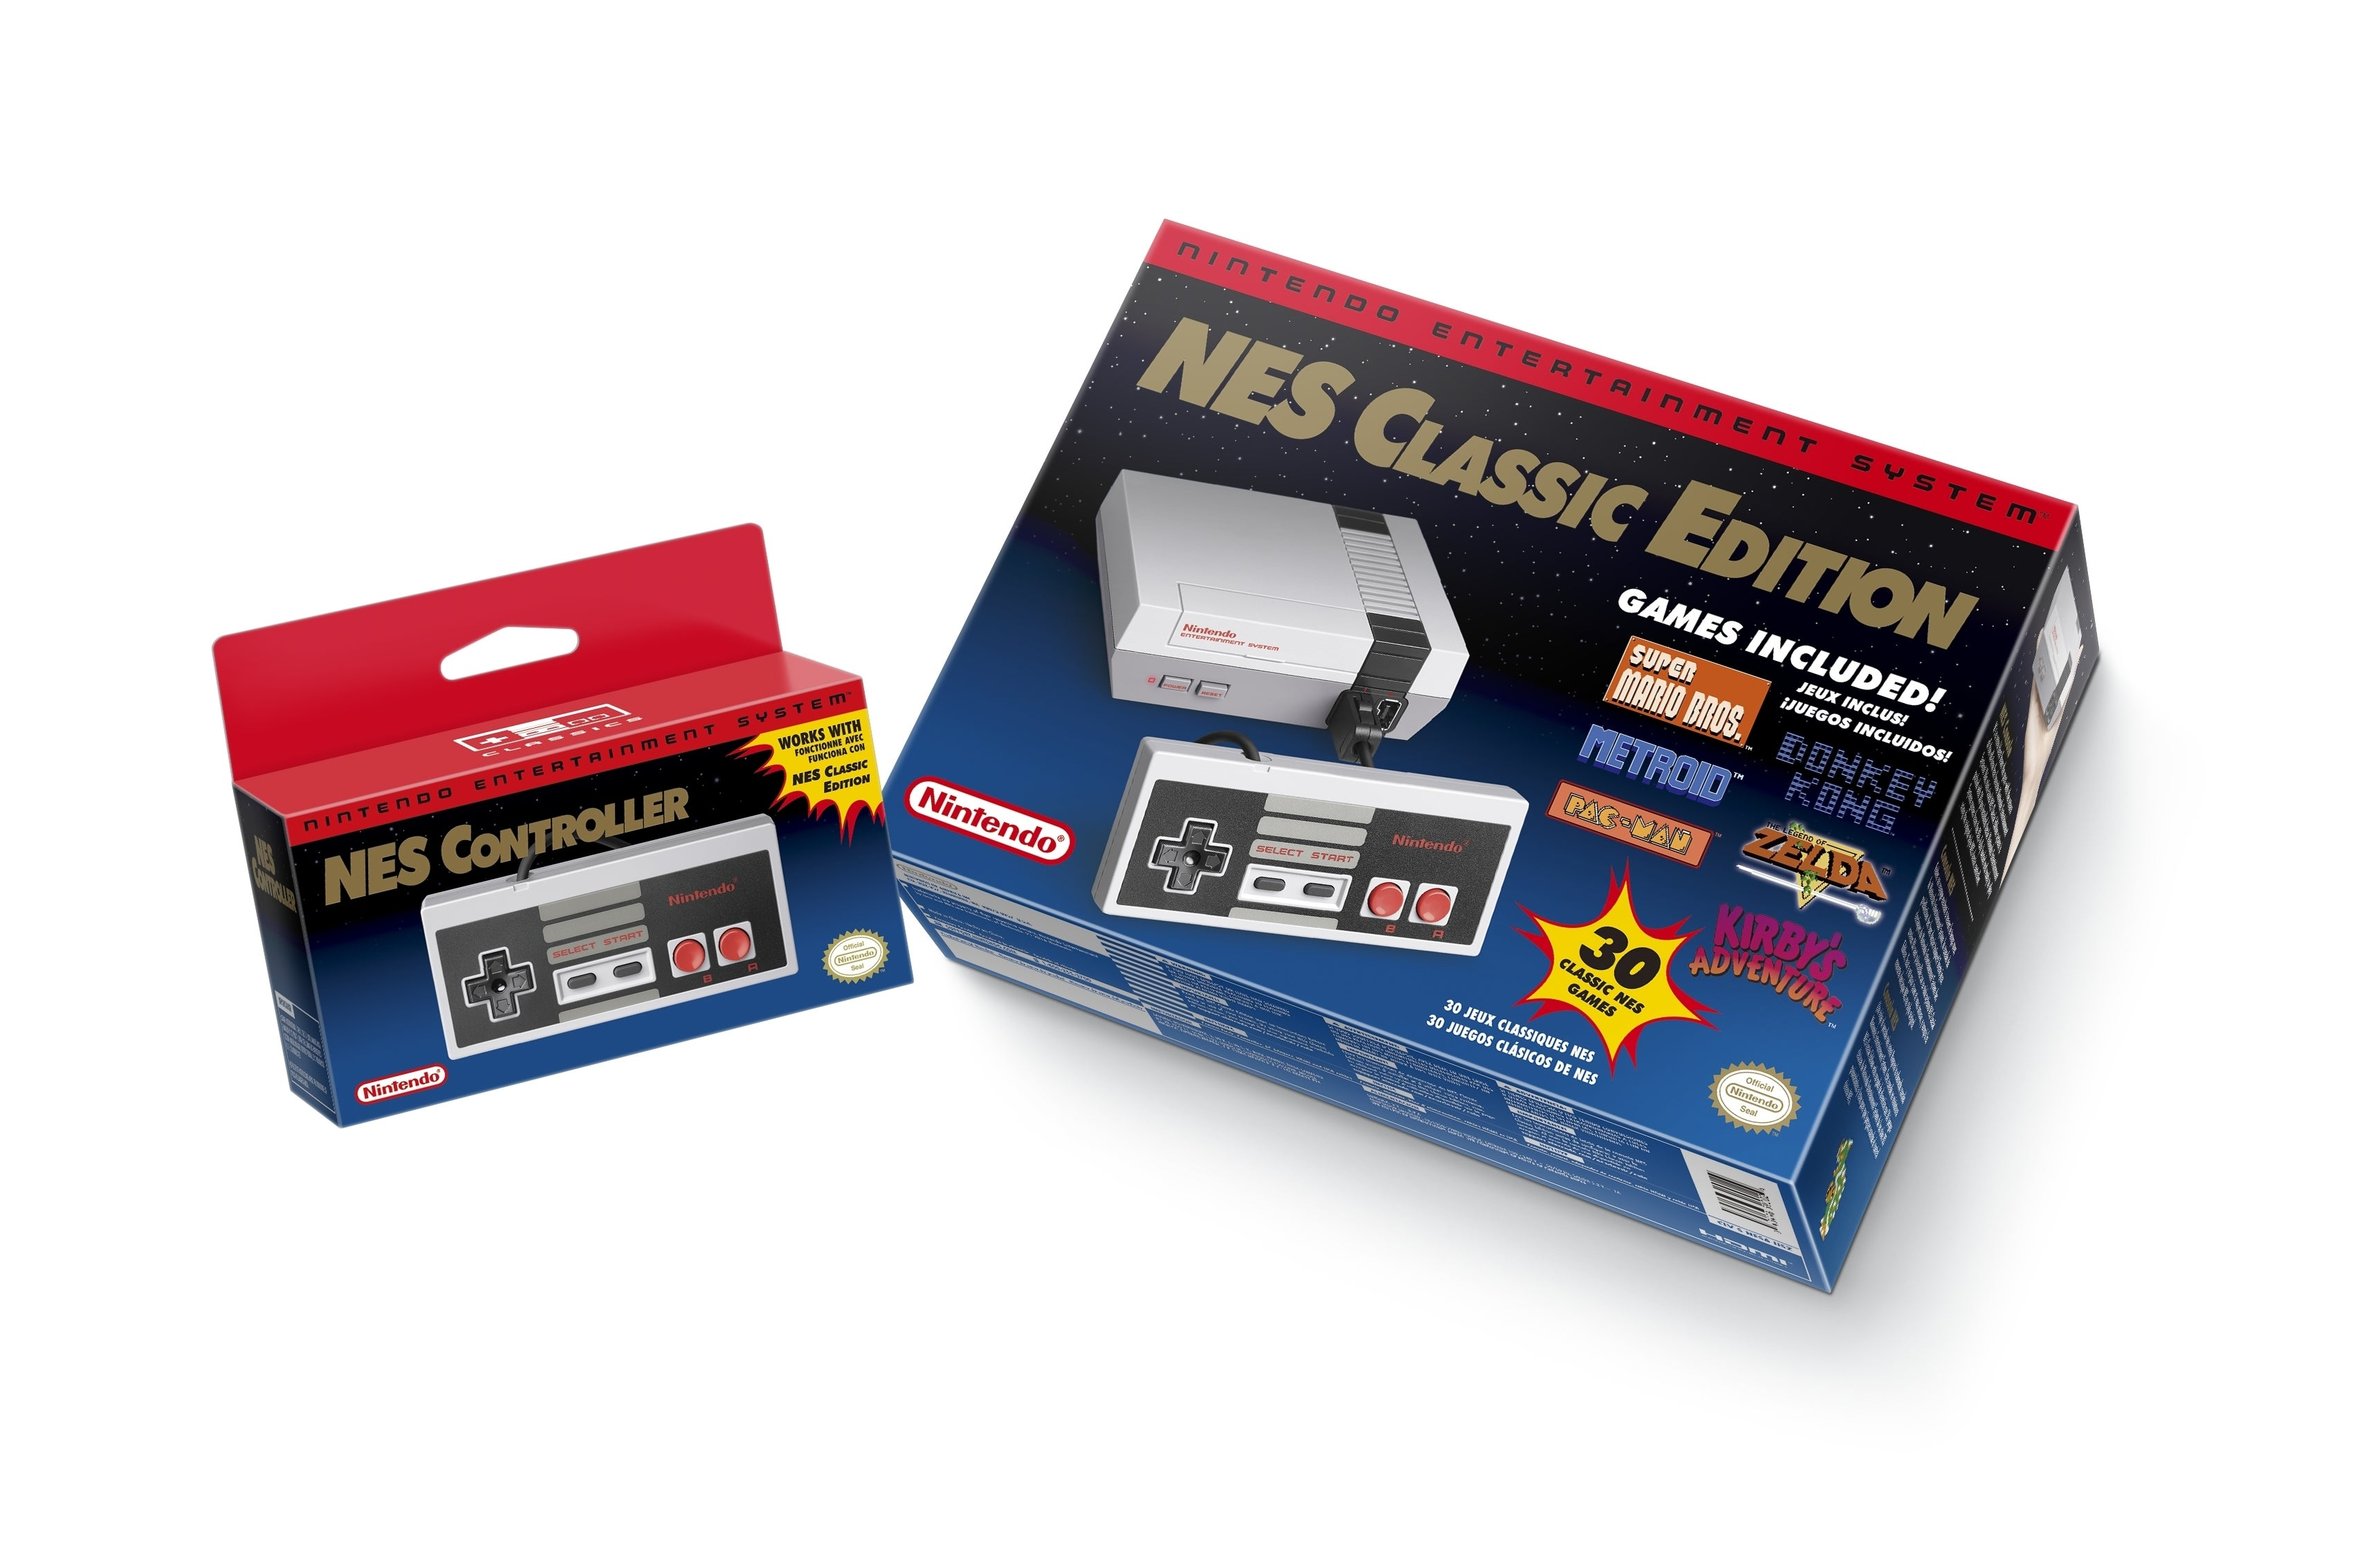 nintendo 39 s releasing a miniature nes console packed with 30 classic games pcworld. Black Bedroom Furniture Sets. Home Design Ideas